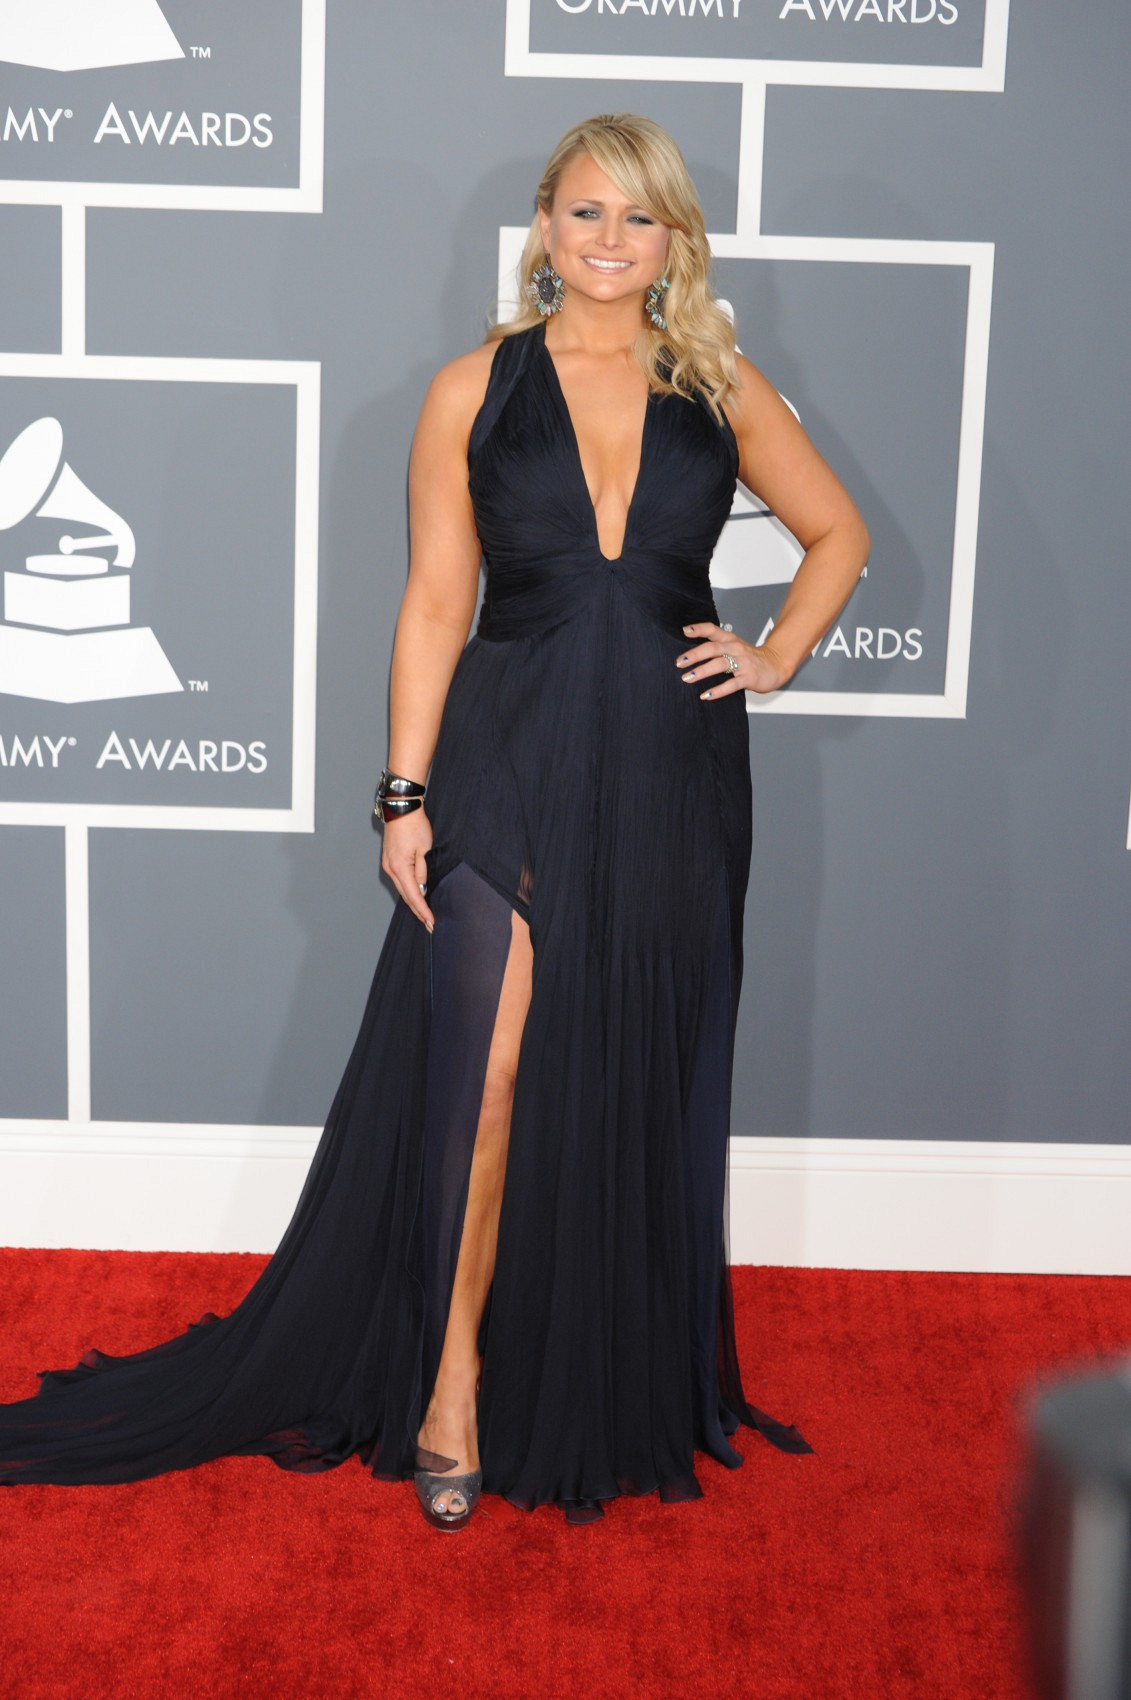 11. Miranda Lambert: Woman in black